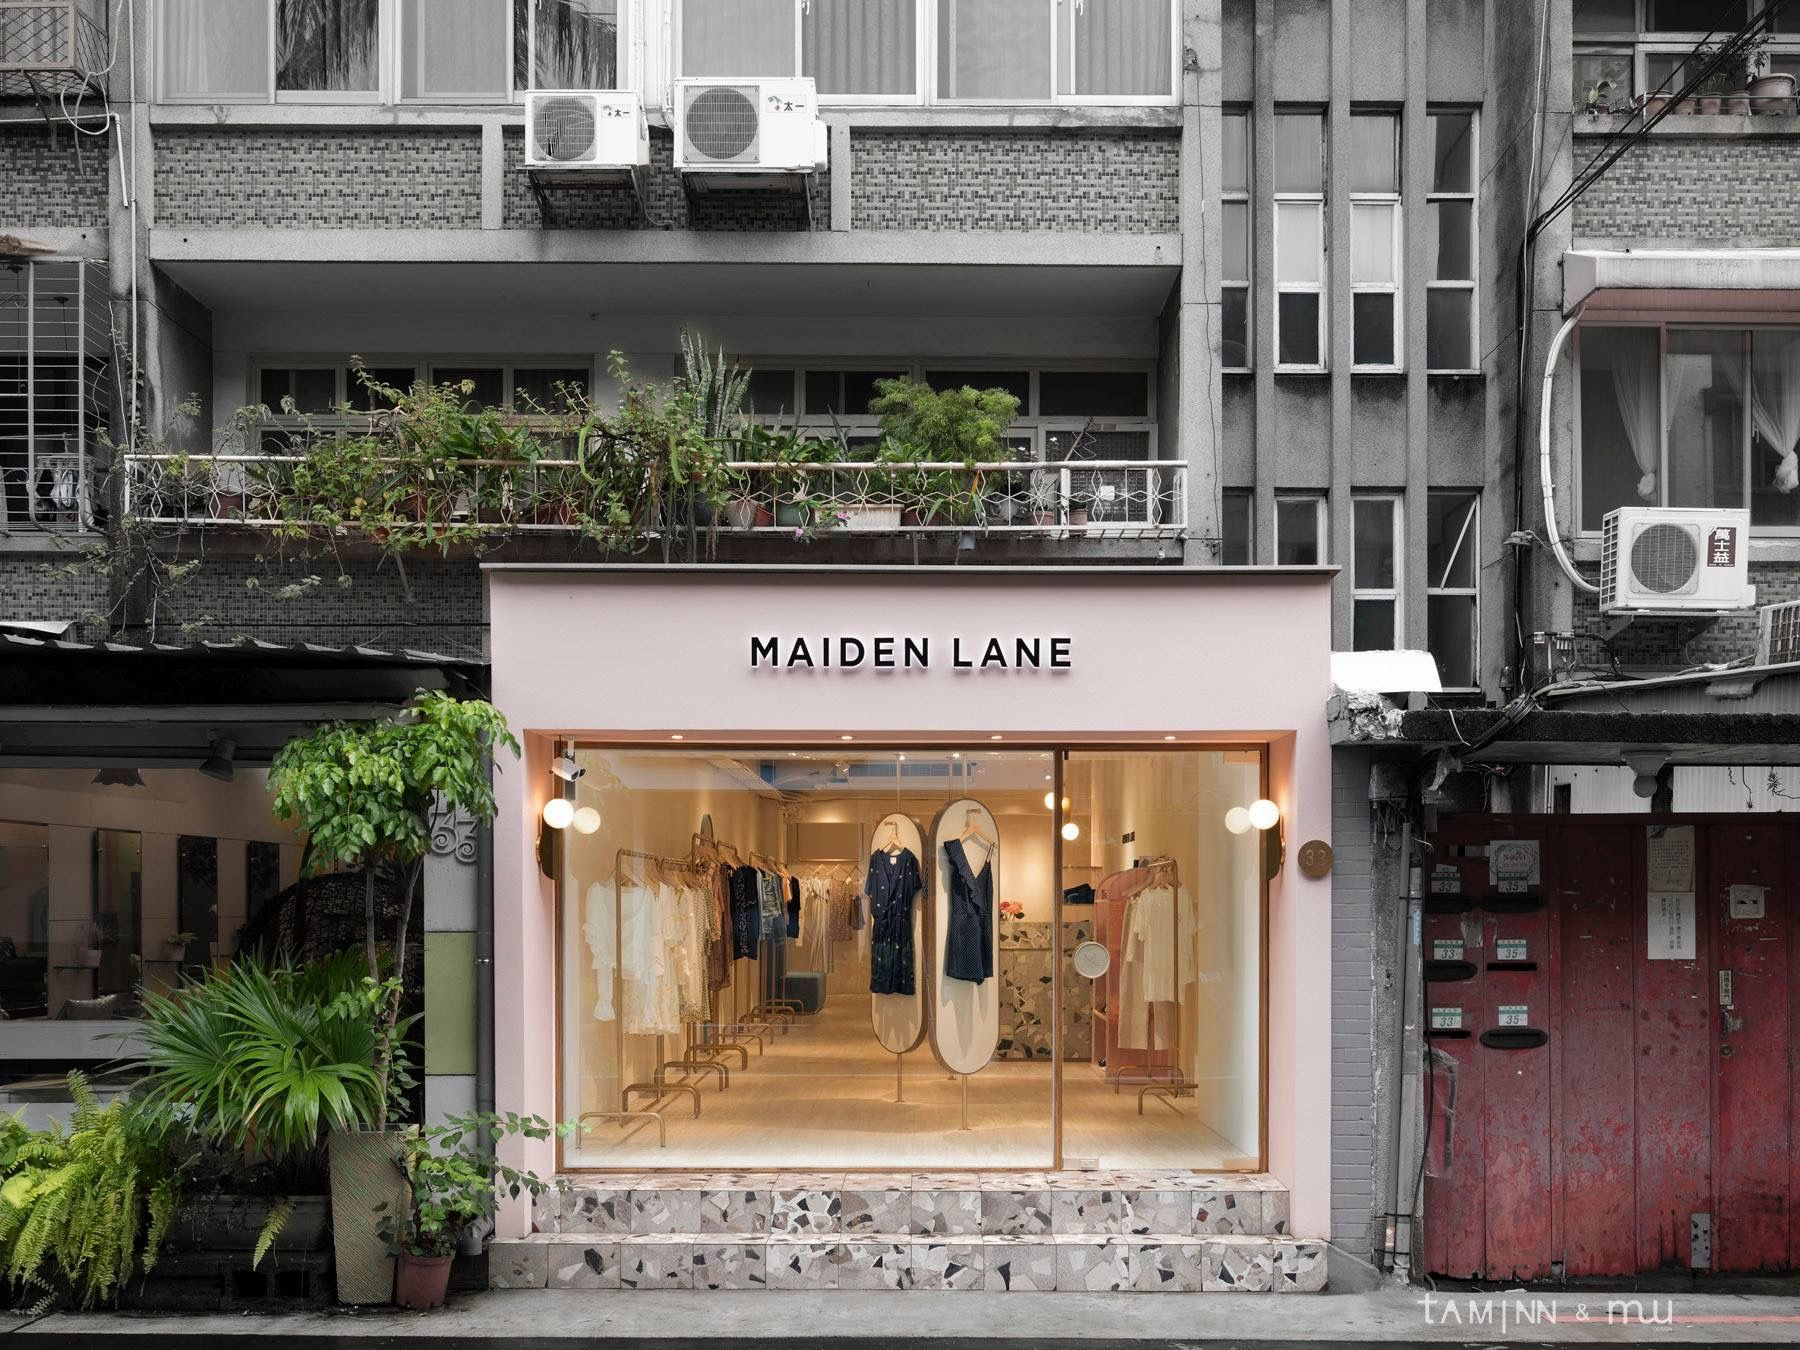 Interview with Maiden Lane: Introducing Western Fashion Trends to Taiwan